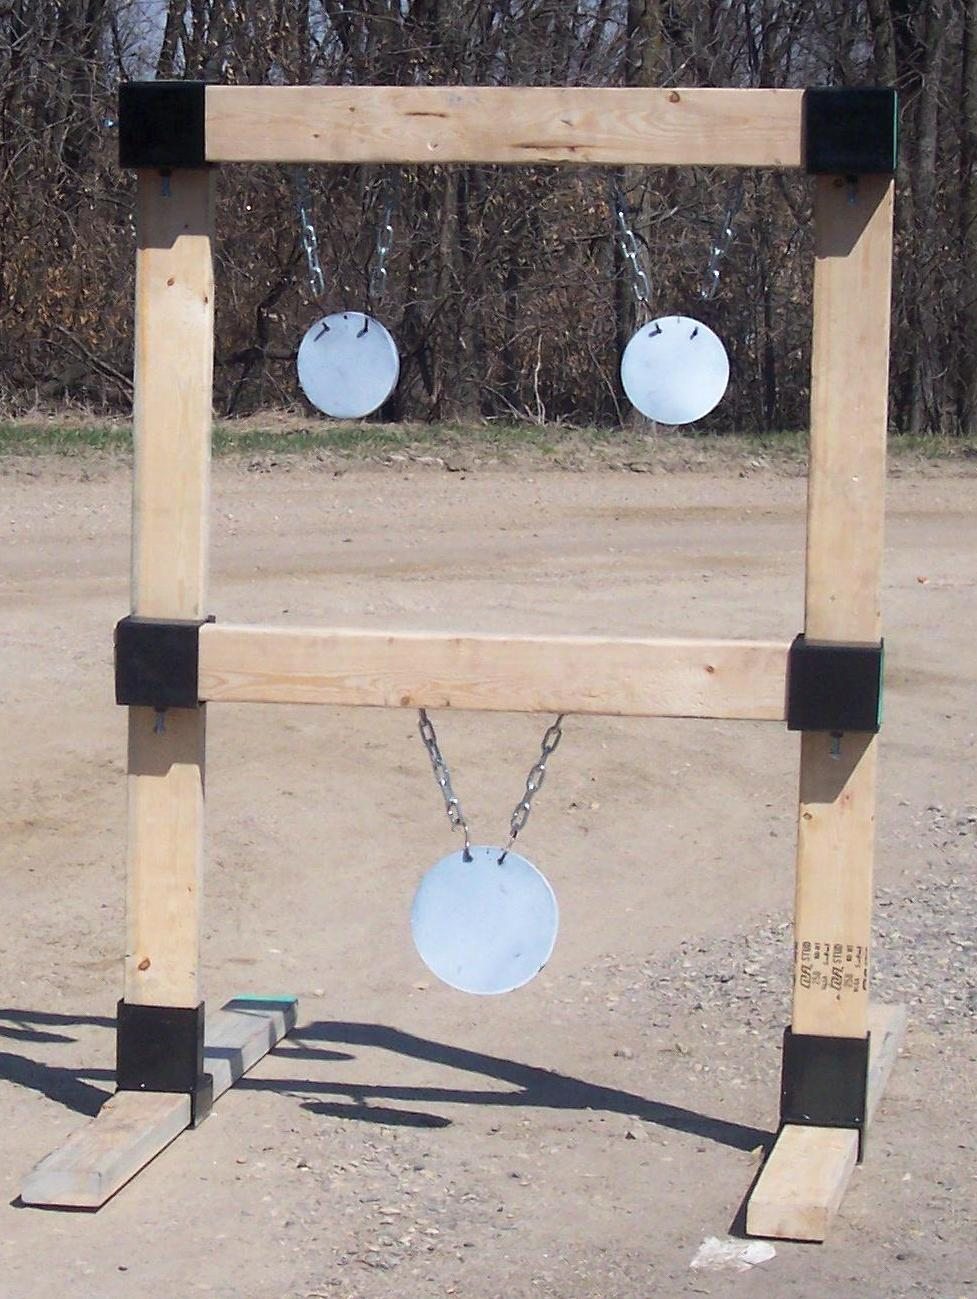 2x4 Hanging Target Stand : steel plate target stand - pezcame.com